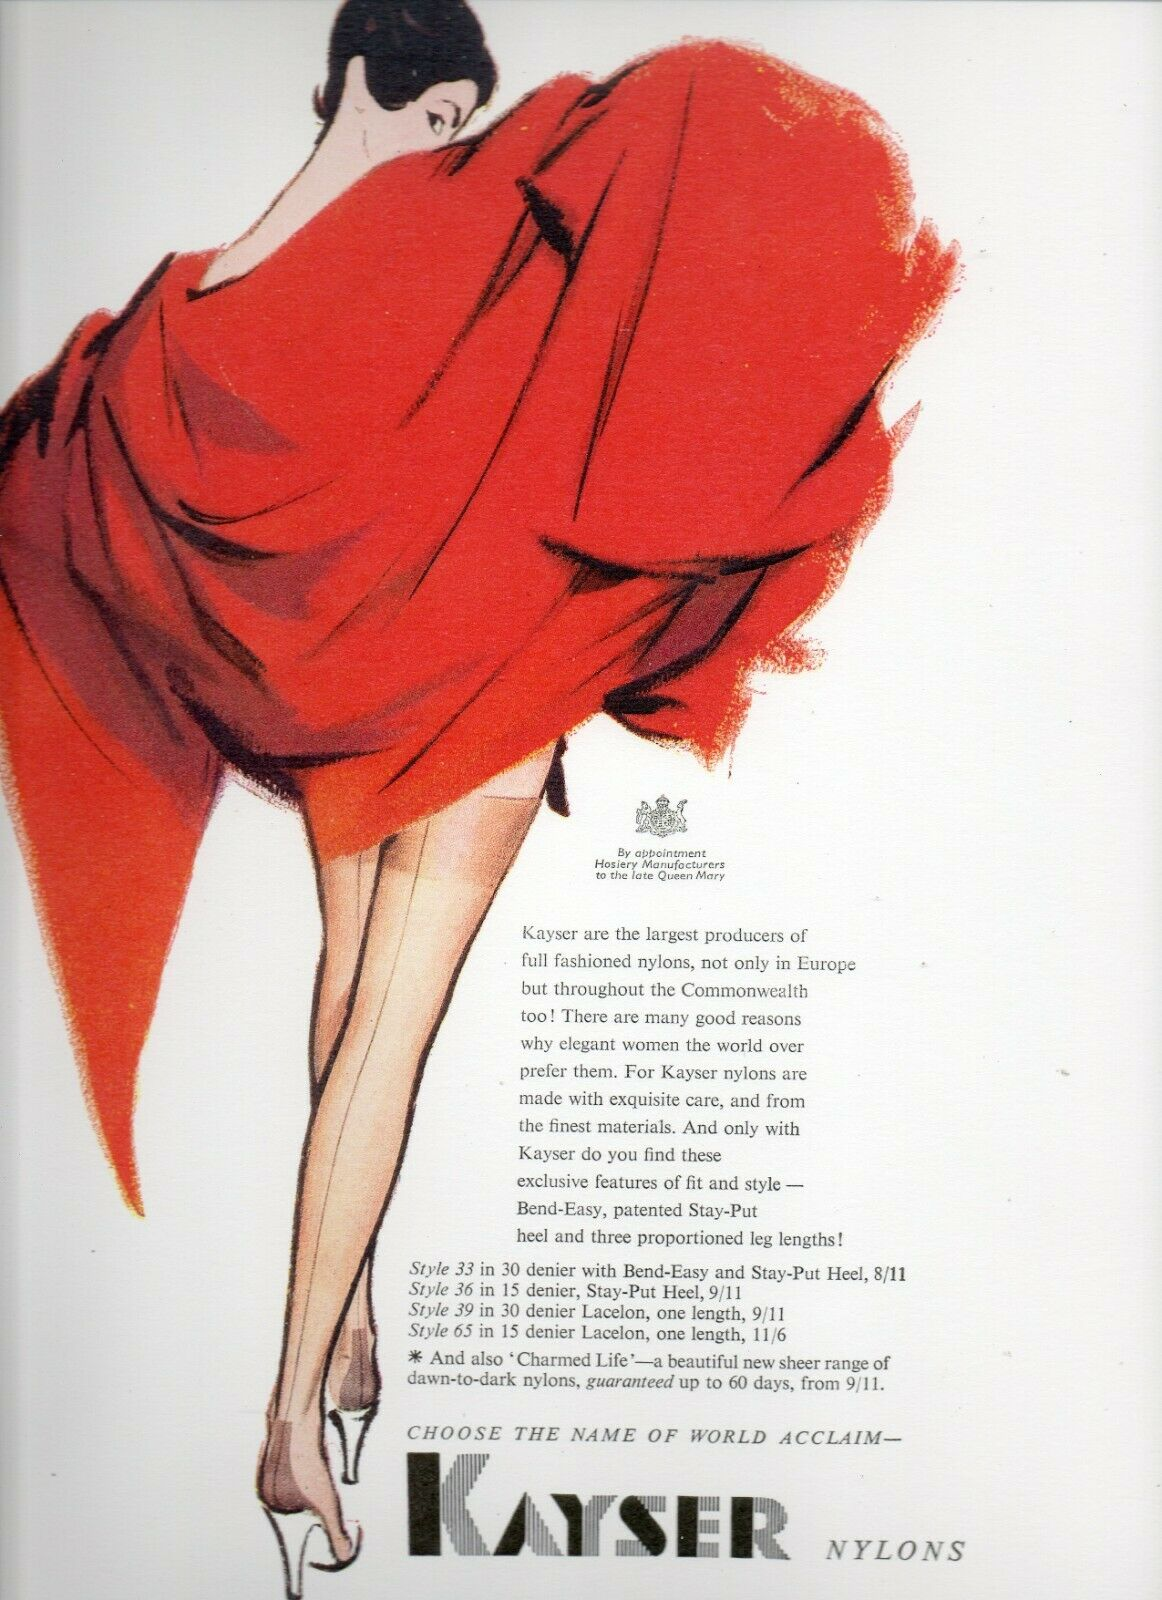 copie 1956 Kayser Nylons from Vogue magazine, March